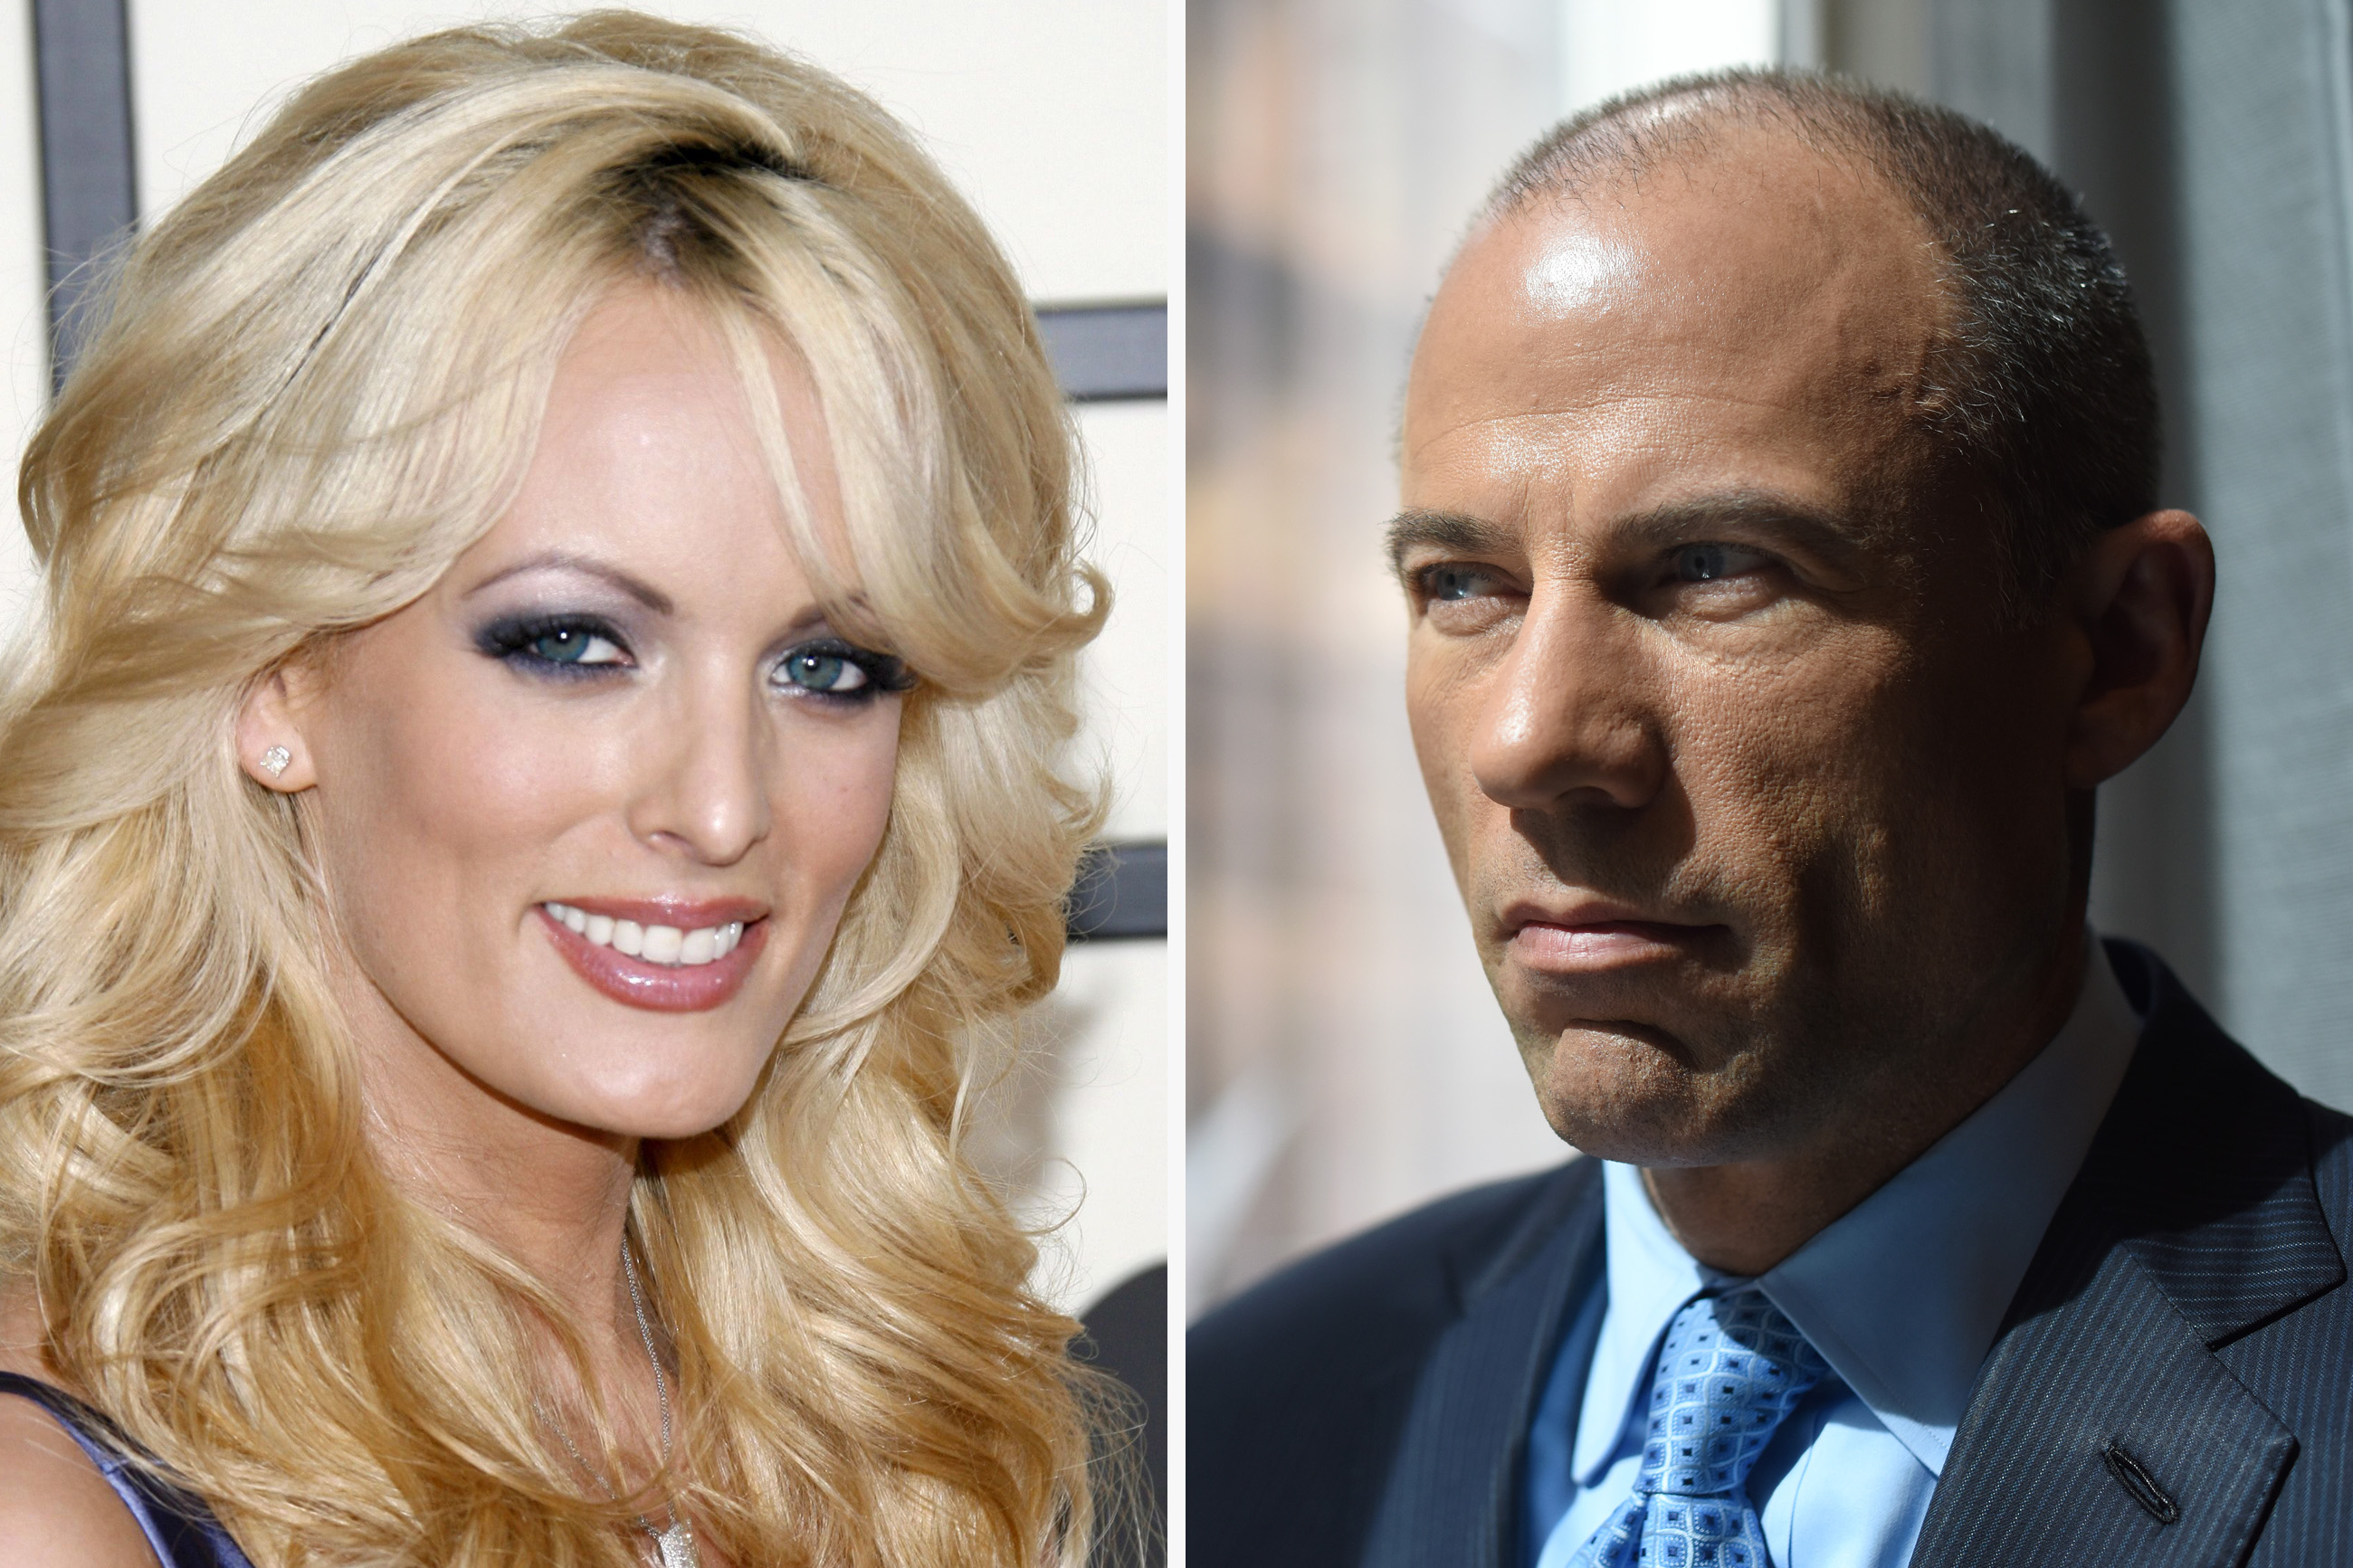 Stormy Daniels's lawyer pushes to depose Trump and says